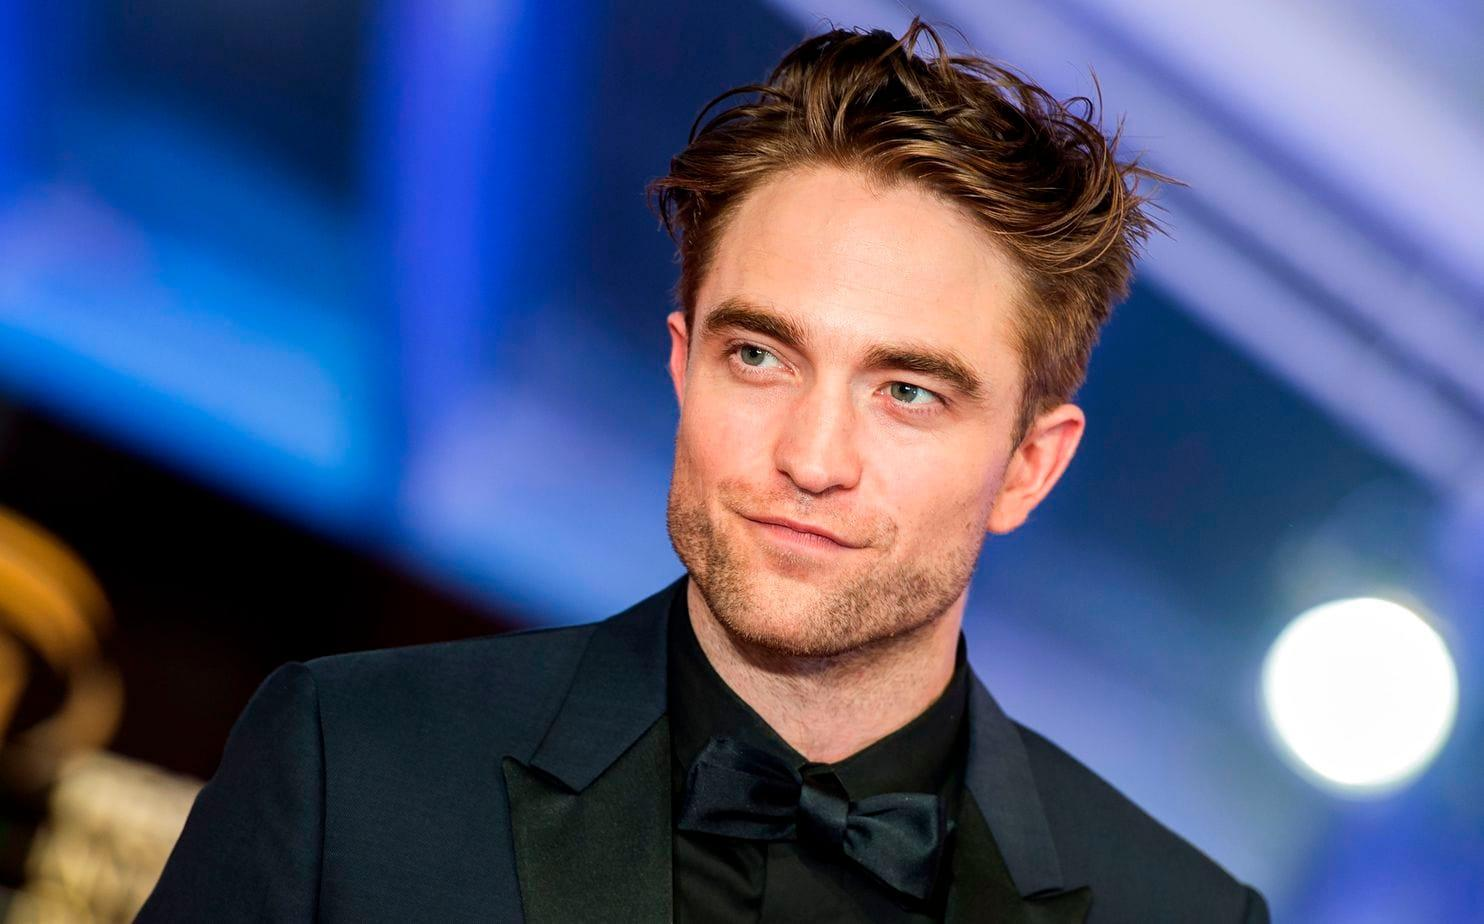 Robert Pattinson Opens Up About Choosing To Star In Upcoming 'Batman' Movie And More In New Interview!